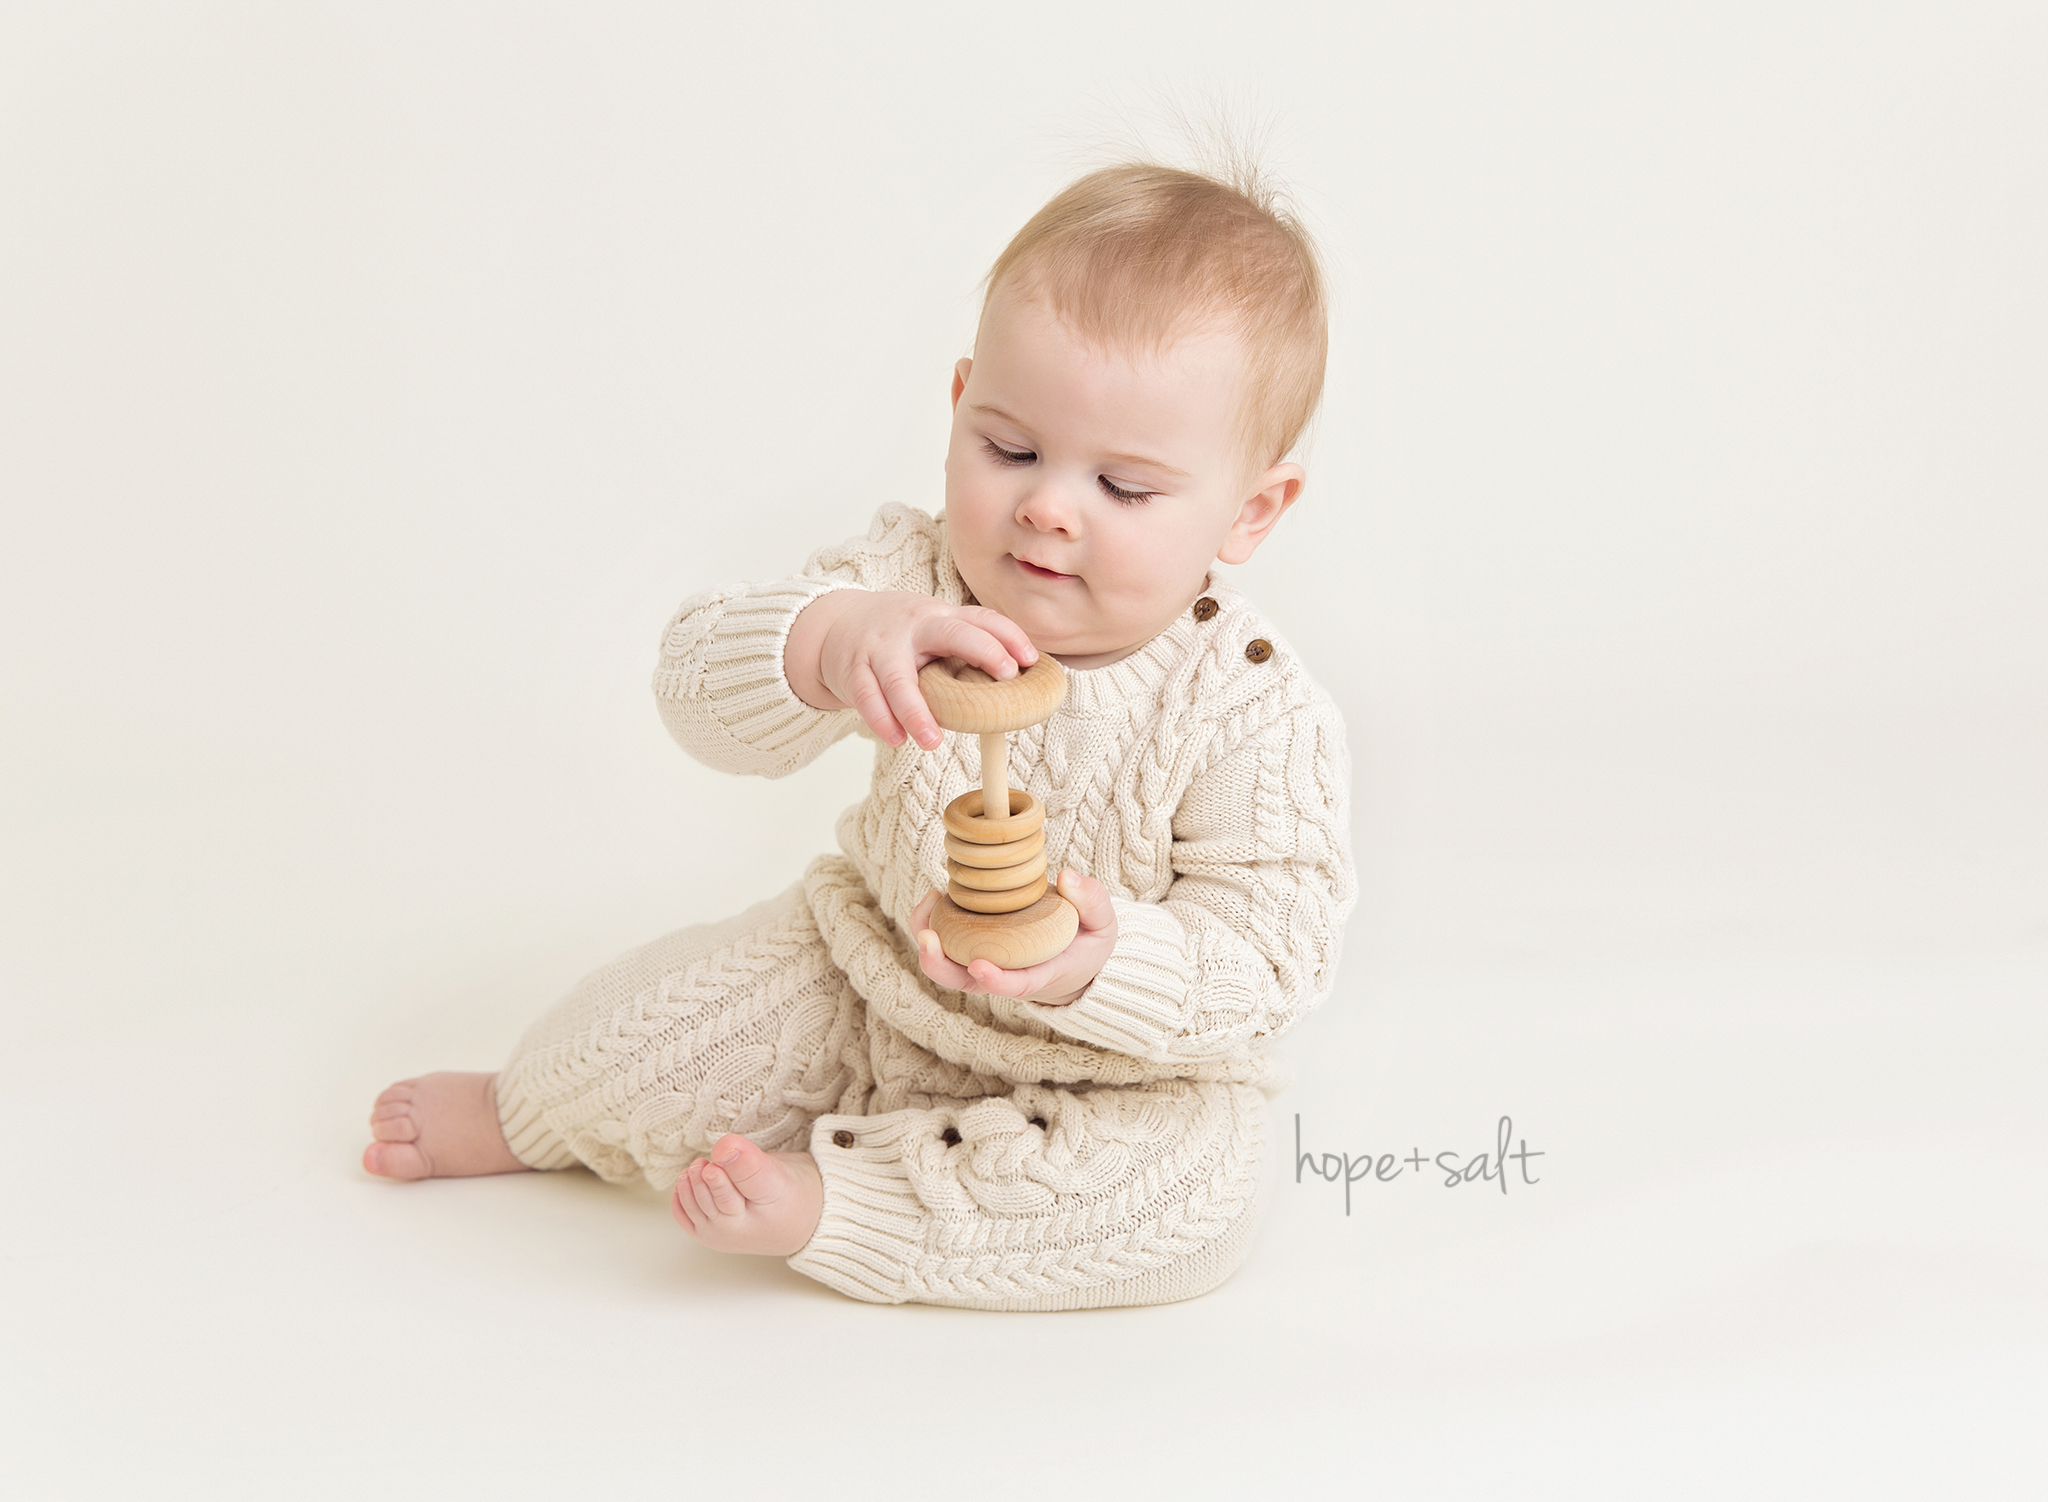 Waterdown baby photographer - a first birthday sitter session for one year old boy Everett in a neutral white, simple pure style by Hope + Salt Photography